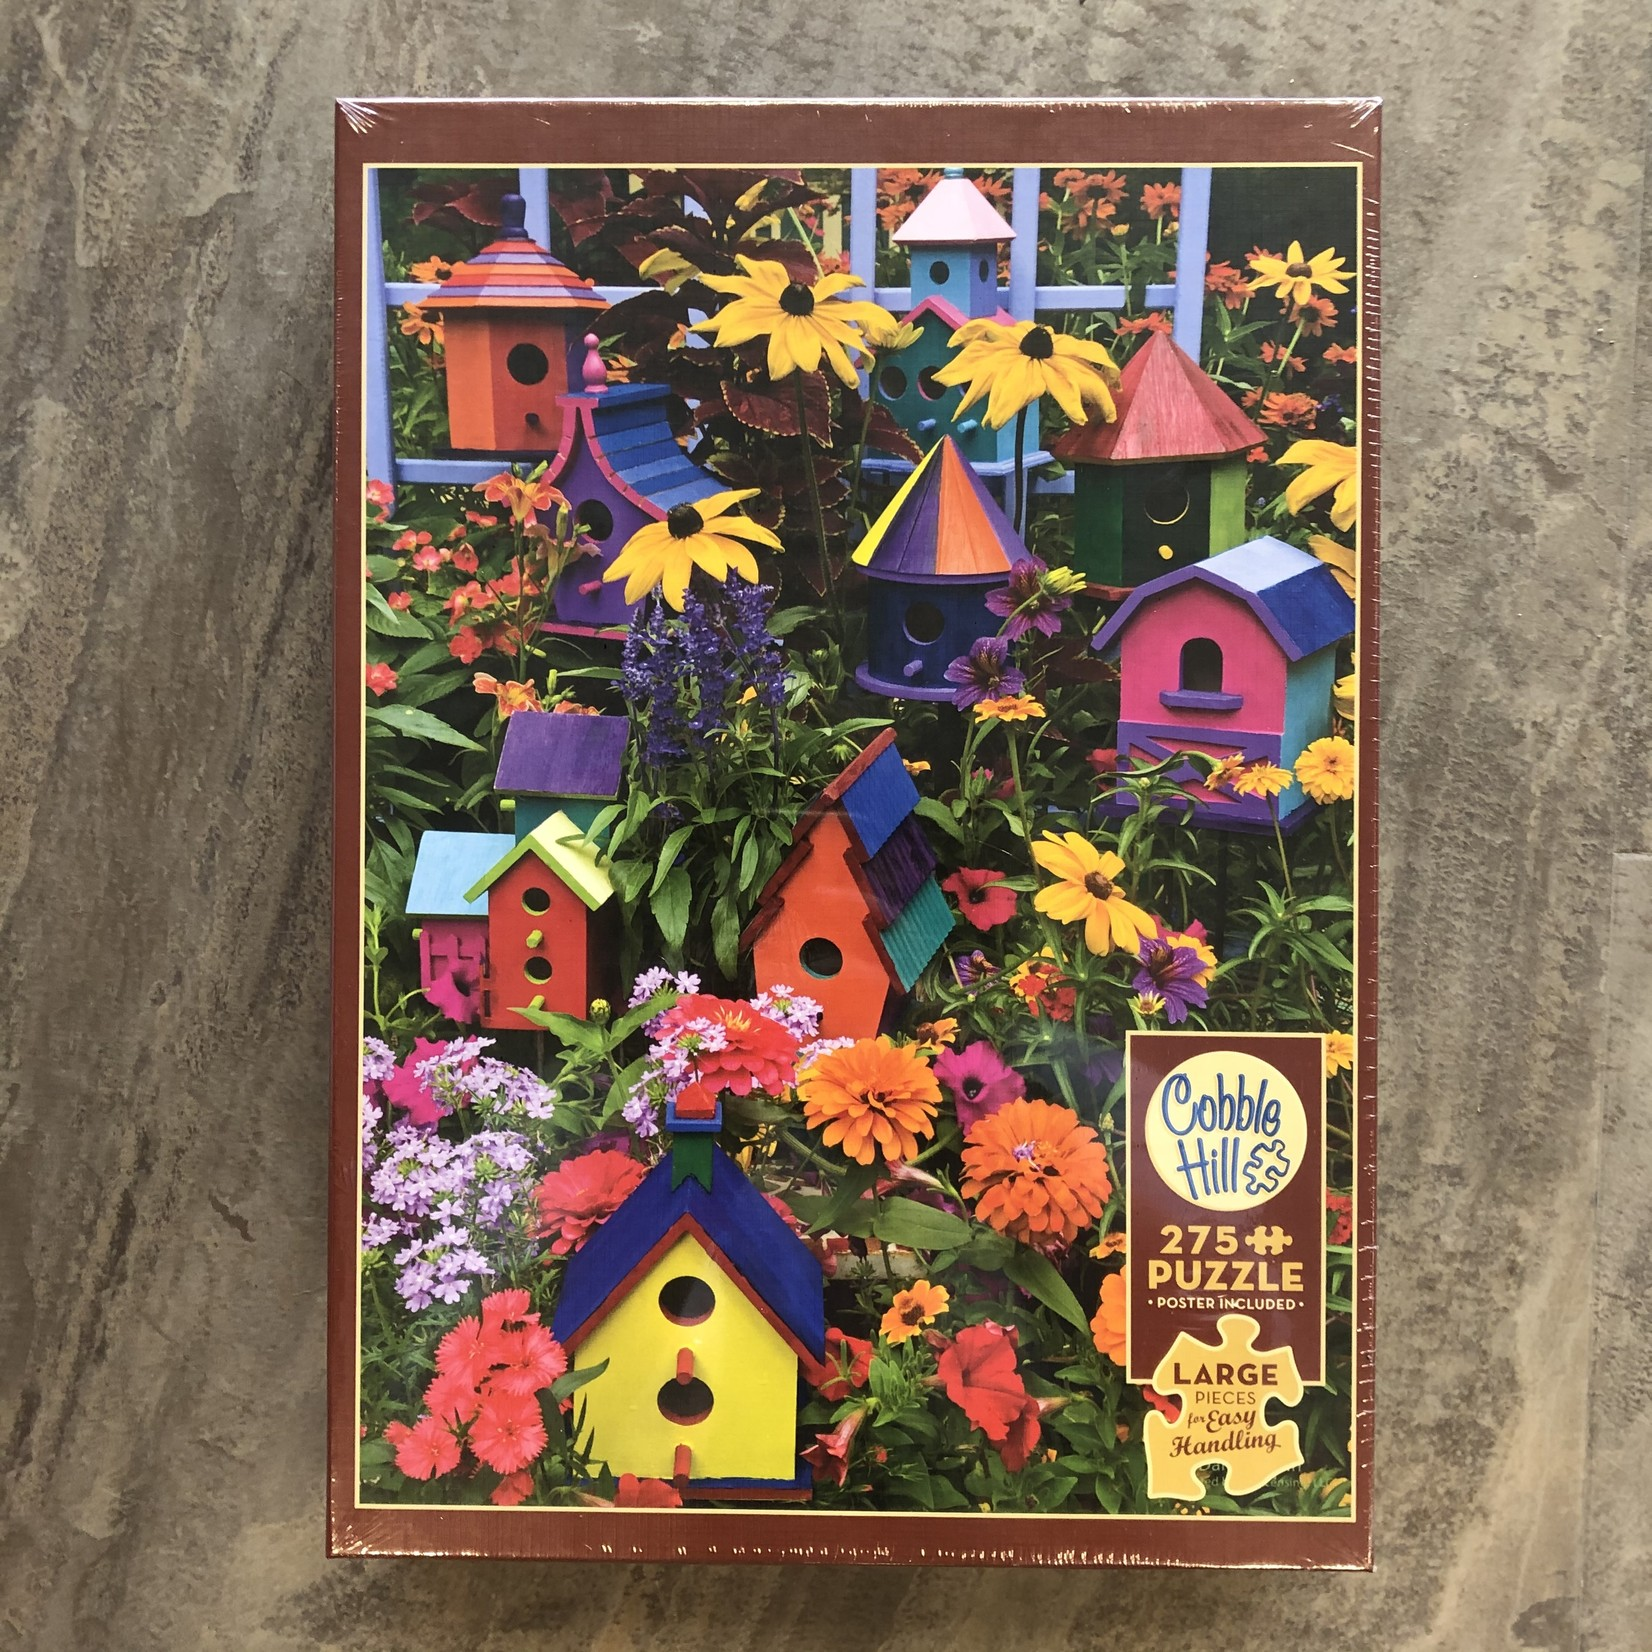 Cobble Hill Puzzles Bird Houses - Easy Handling Puzzle